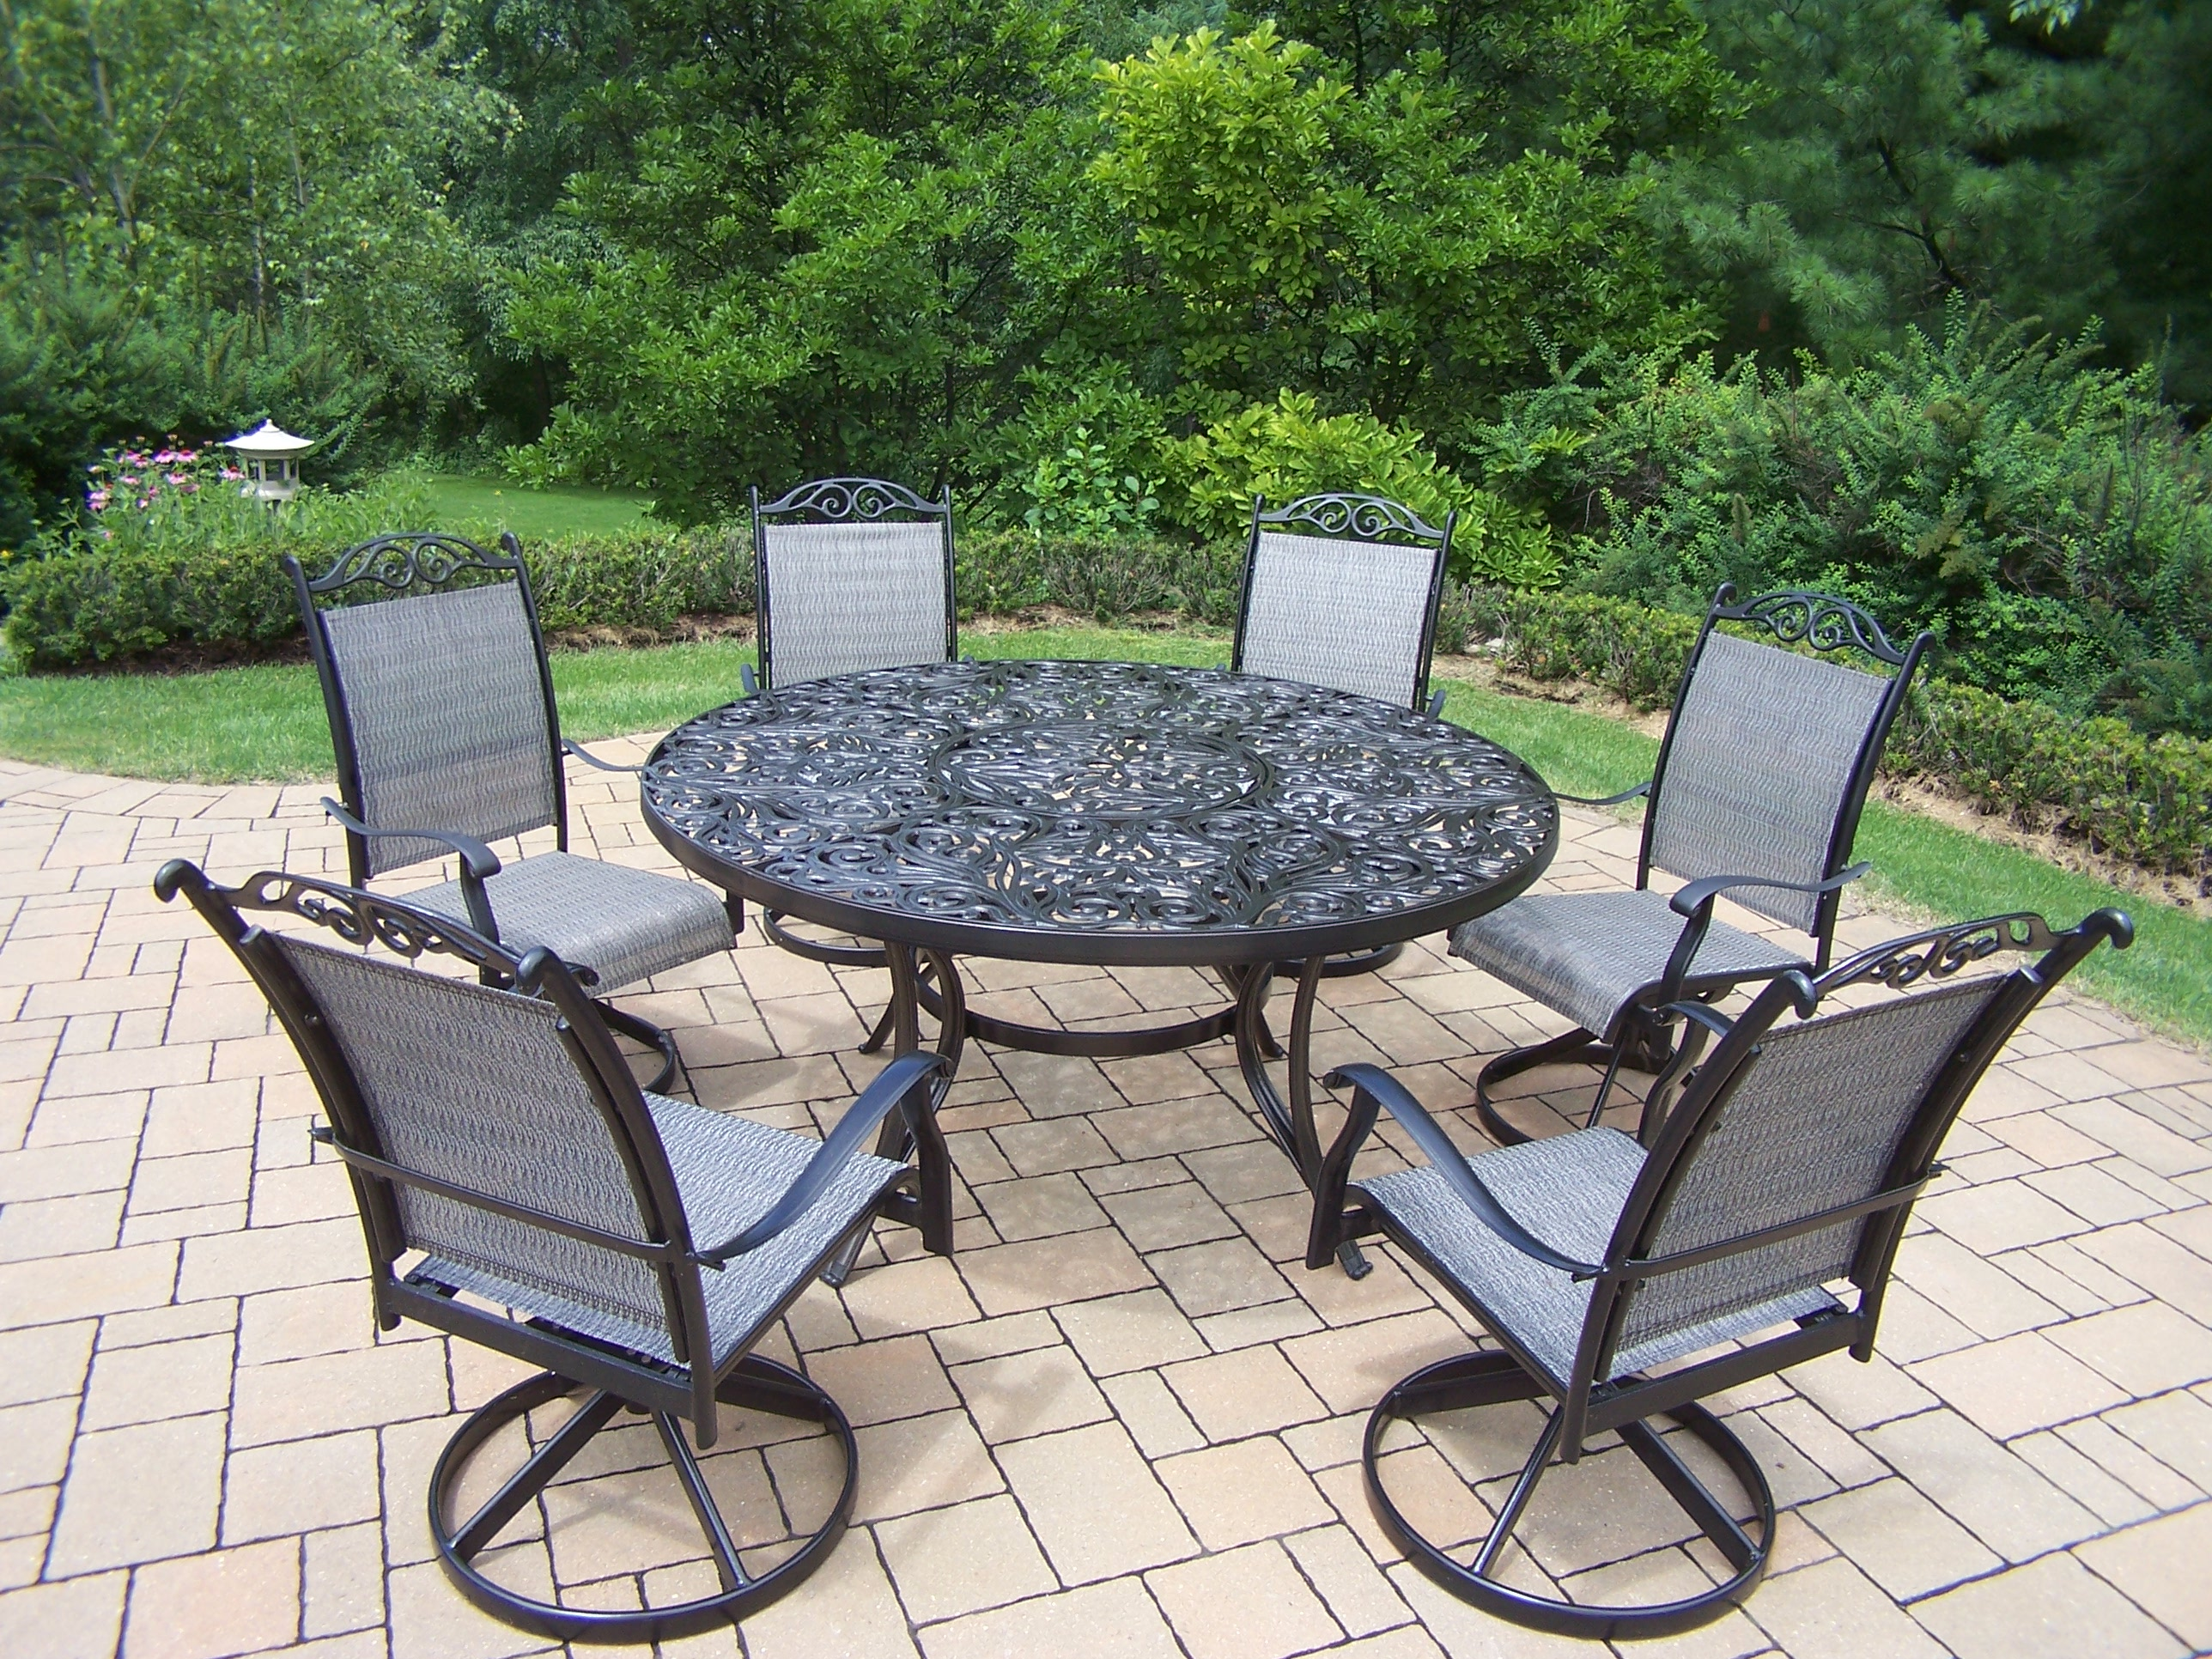 7 Piece Round Patio Dining Set Oakland Living Aluminum 7 Pc Patio Dining Set W 60